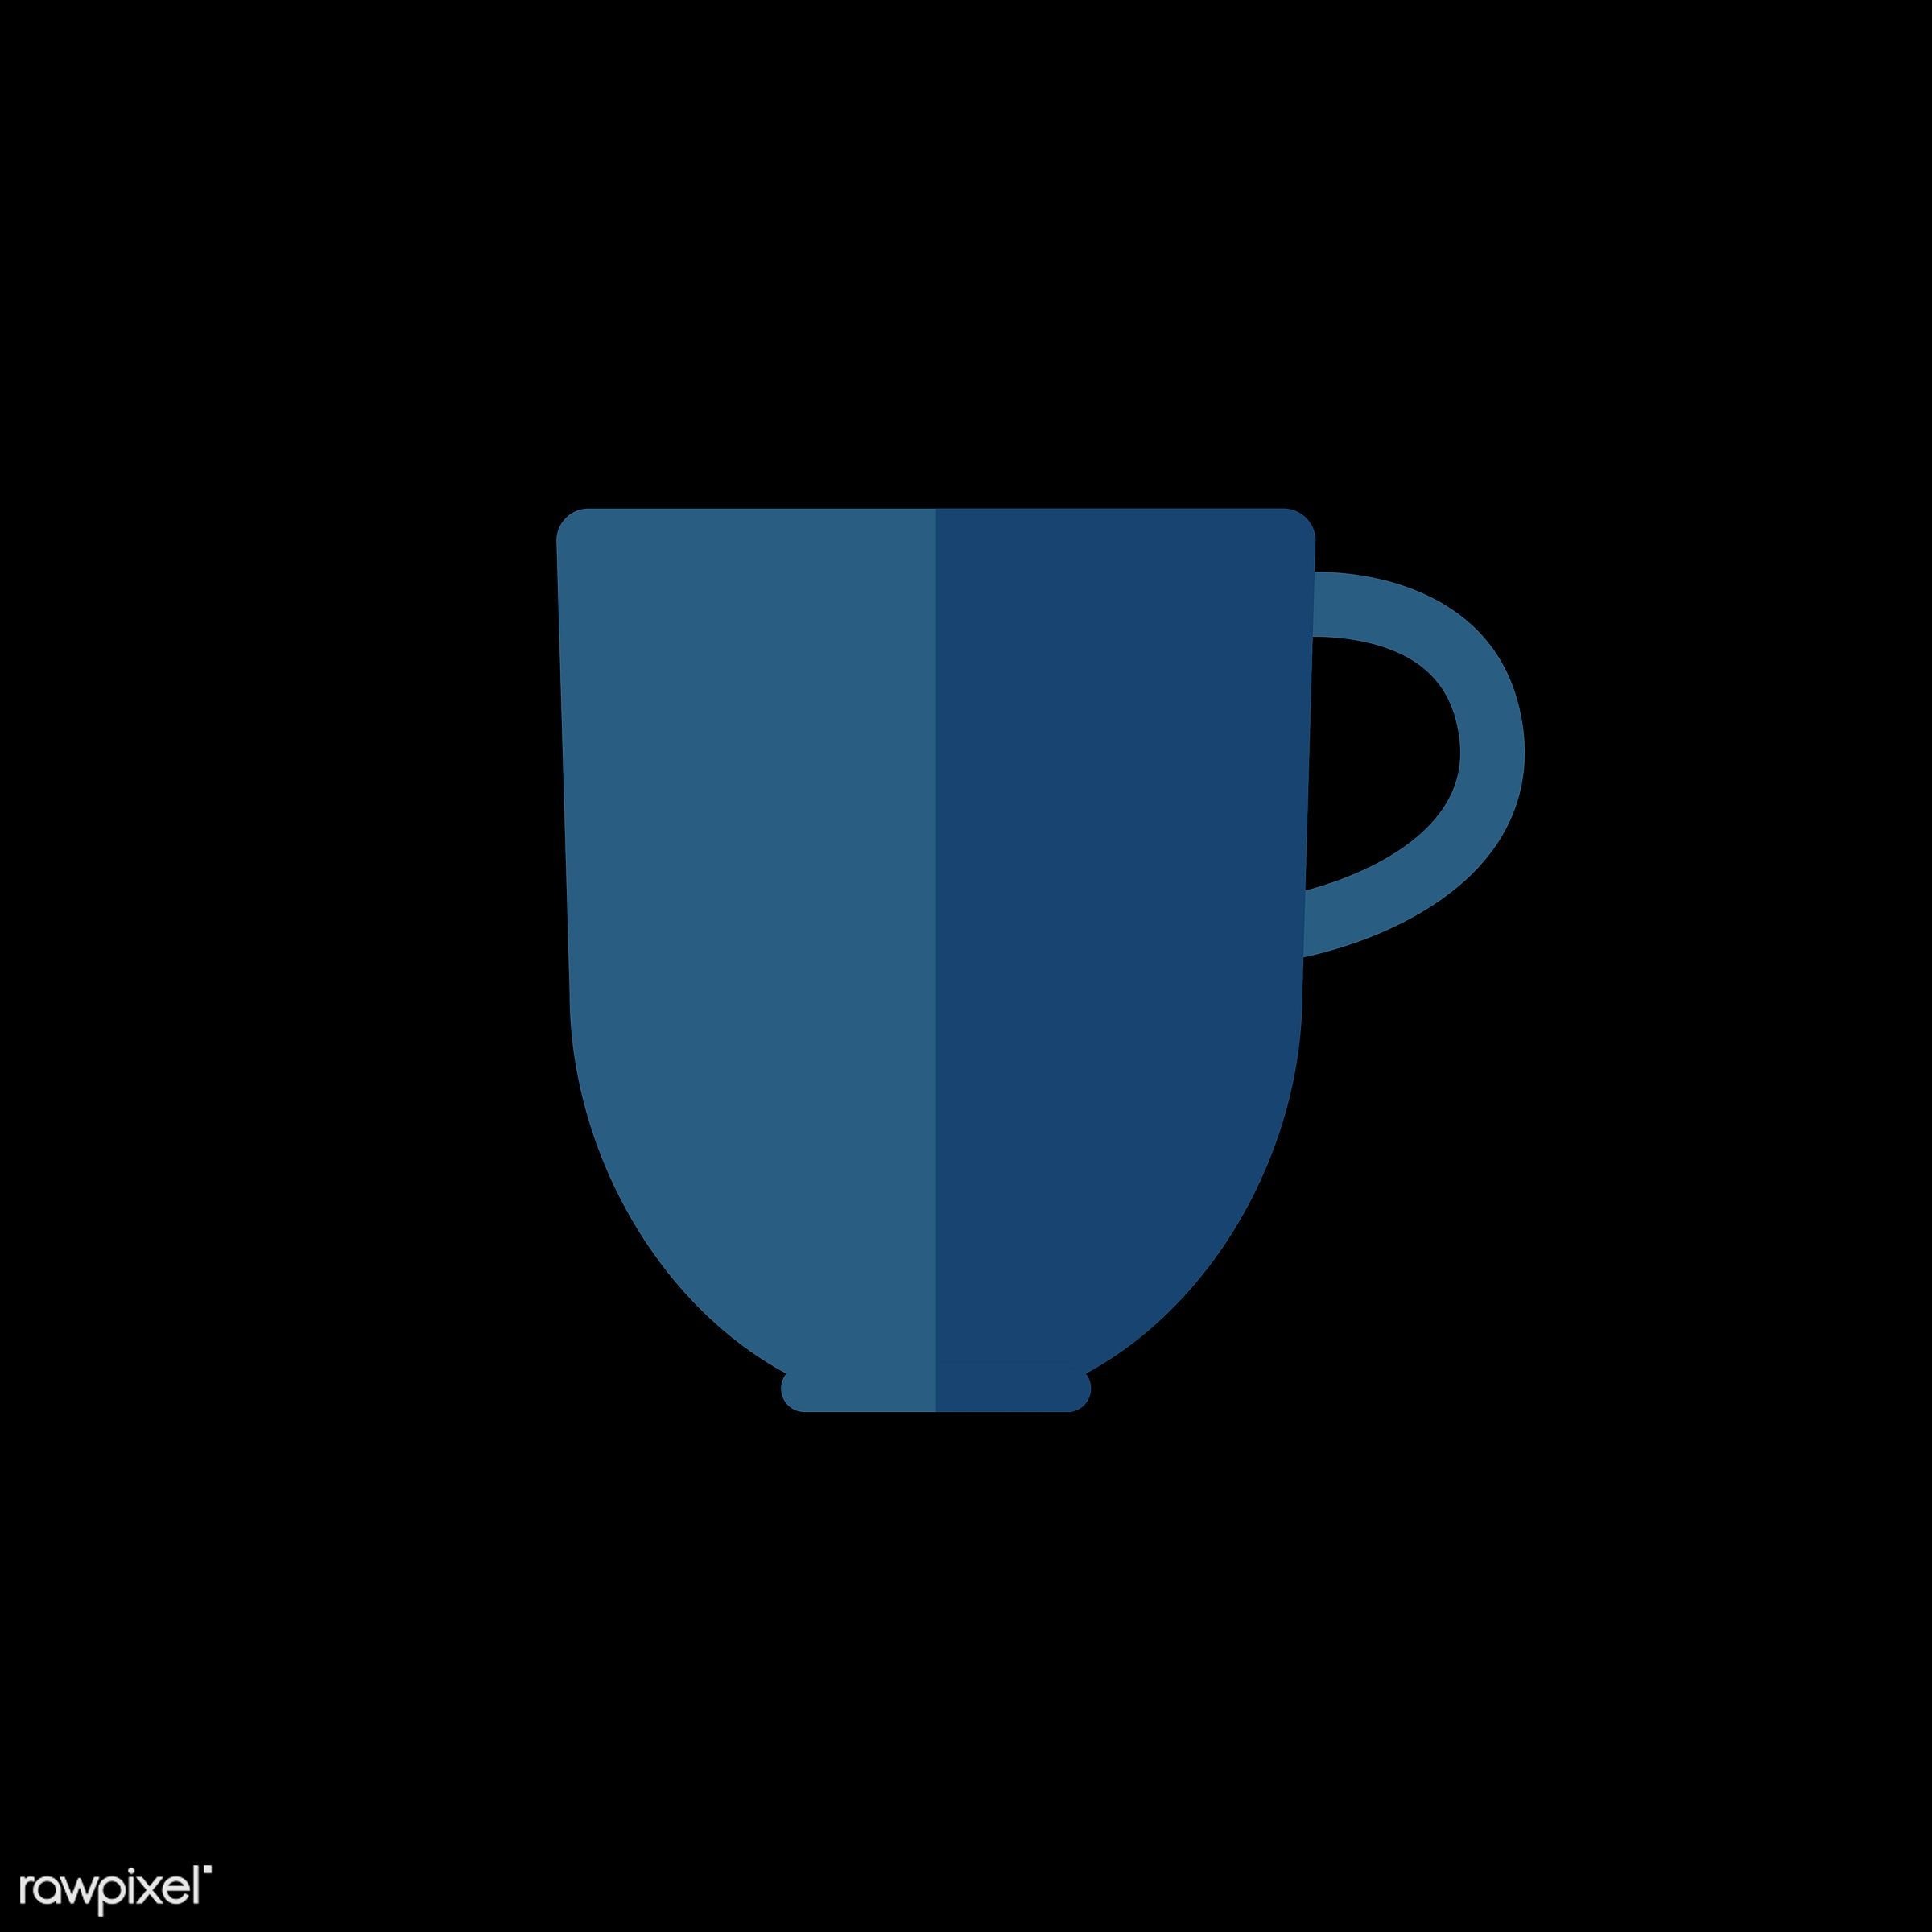 vector, graphic, illustration, icon, symbol, colorful, cute, drink, beverage, water, blue, cup, mug, coffee, coffee cup